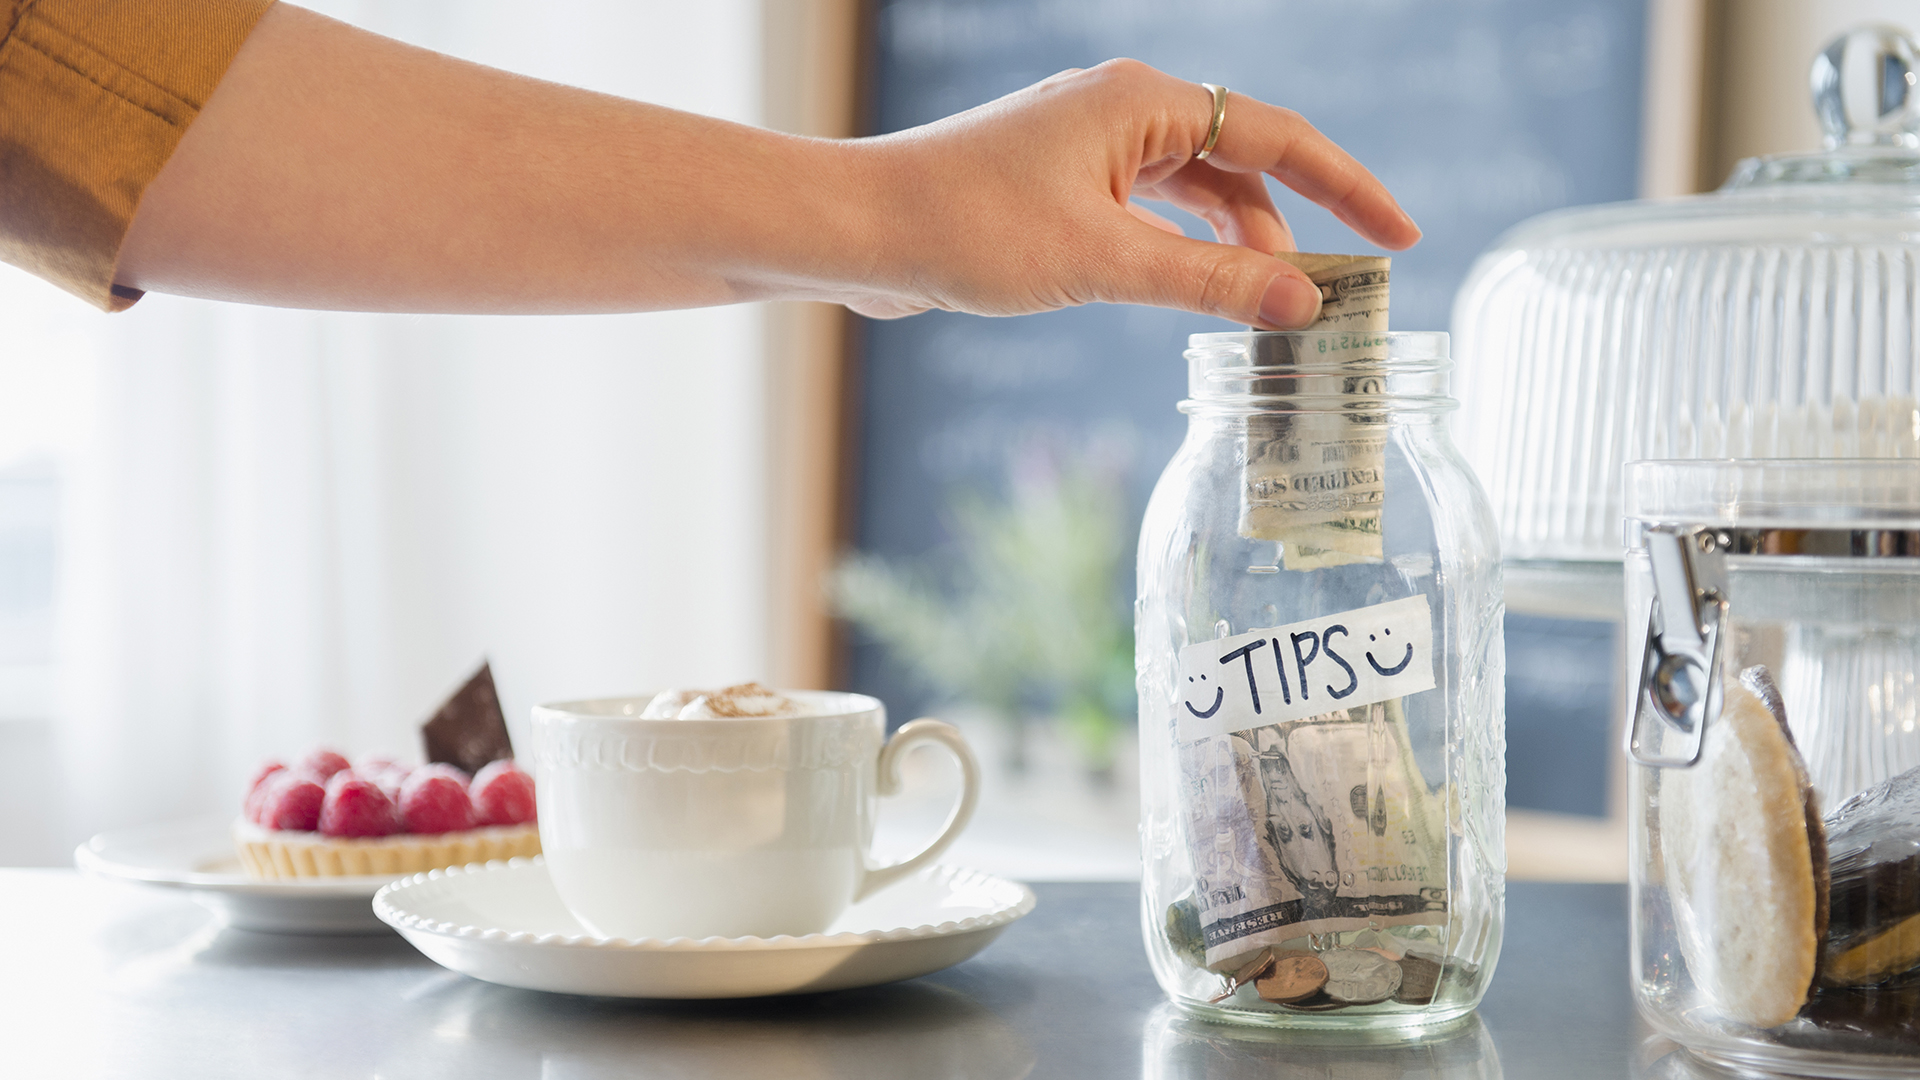 Guilt Tipping Are Square Mobile Payments Making Us Tip Everyone